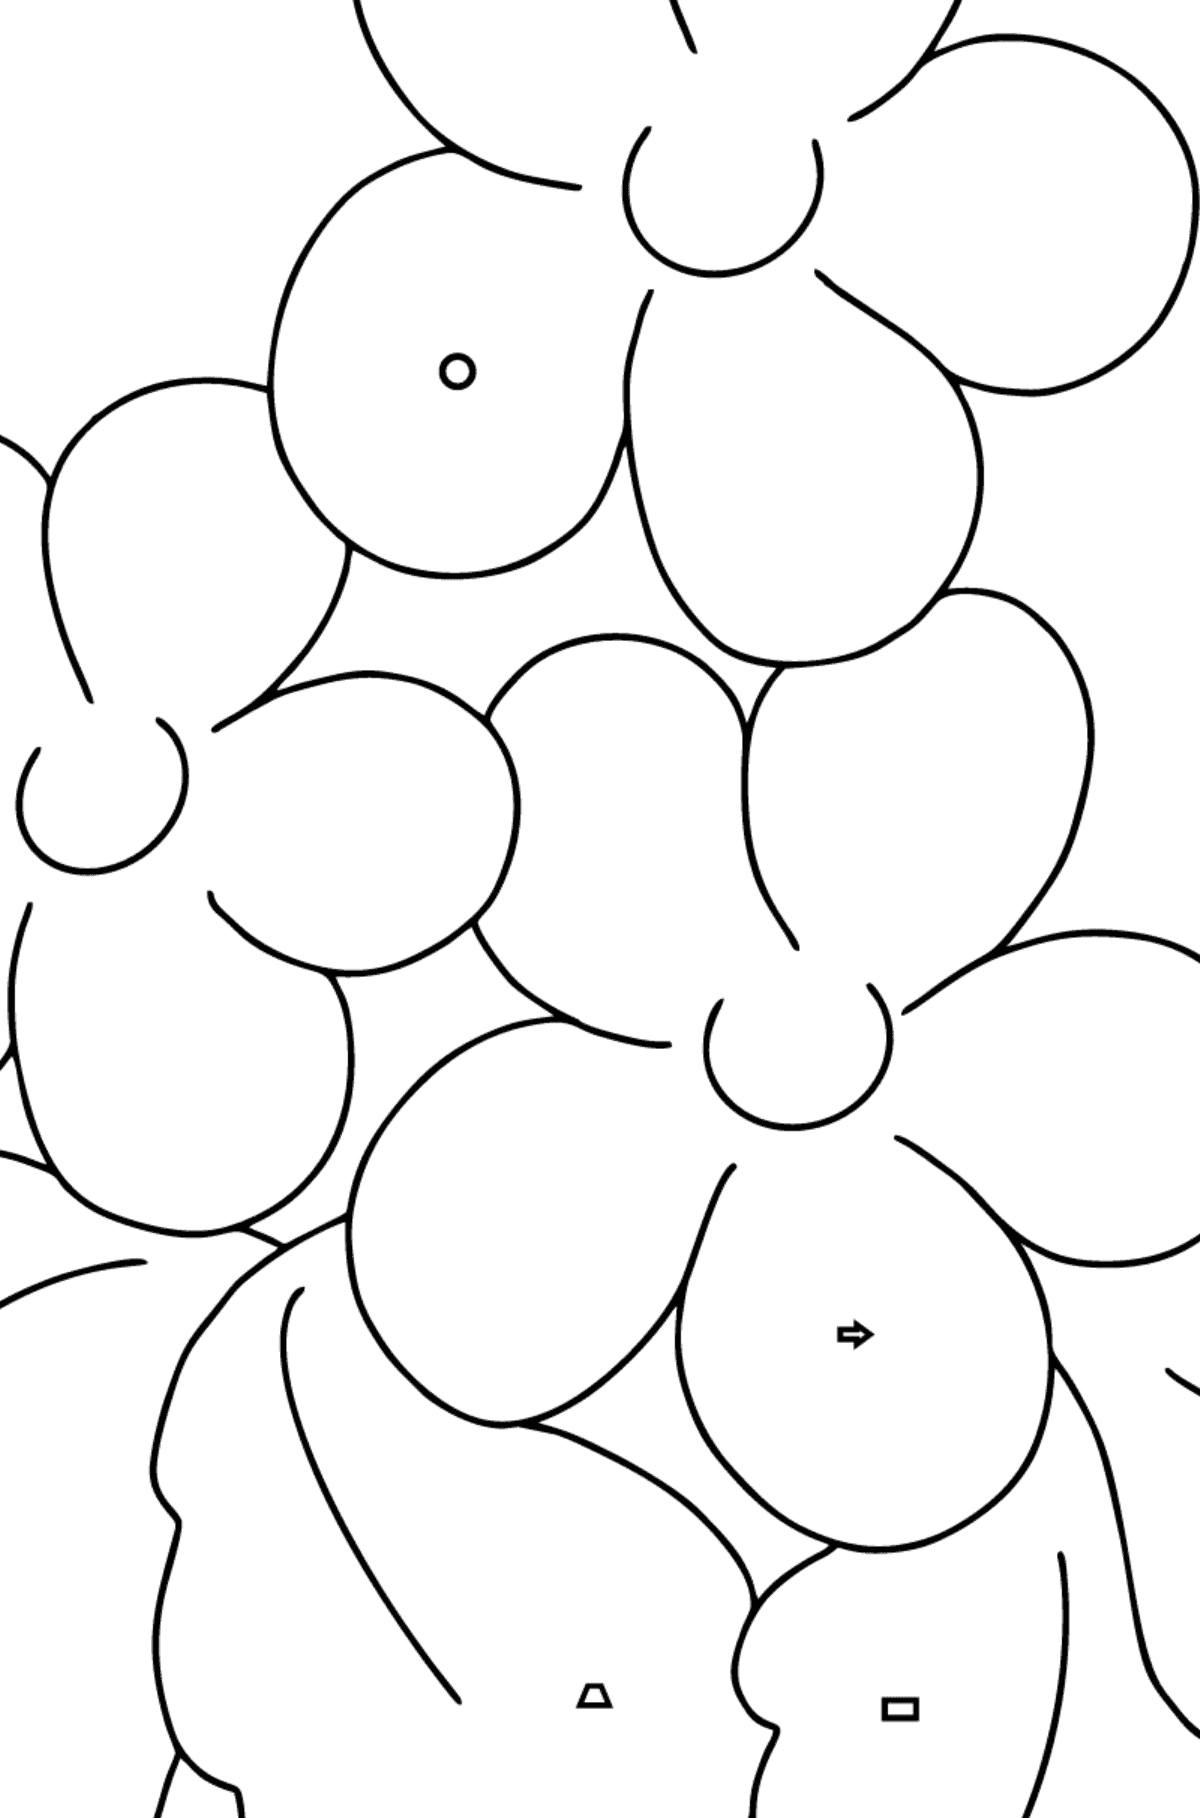 Coloring Page - Spring and Flowers - Coloring by Geometric Shapes for Kids